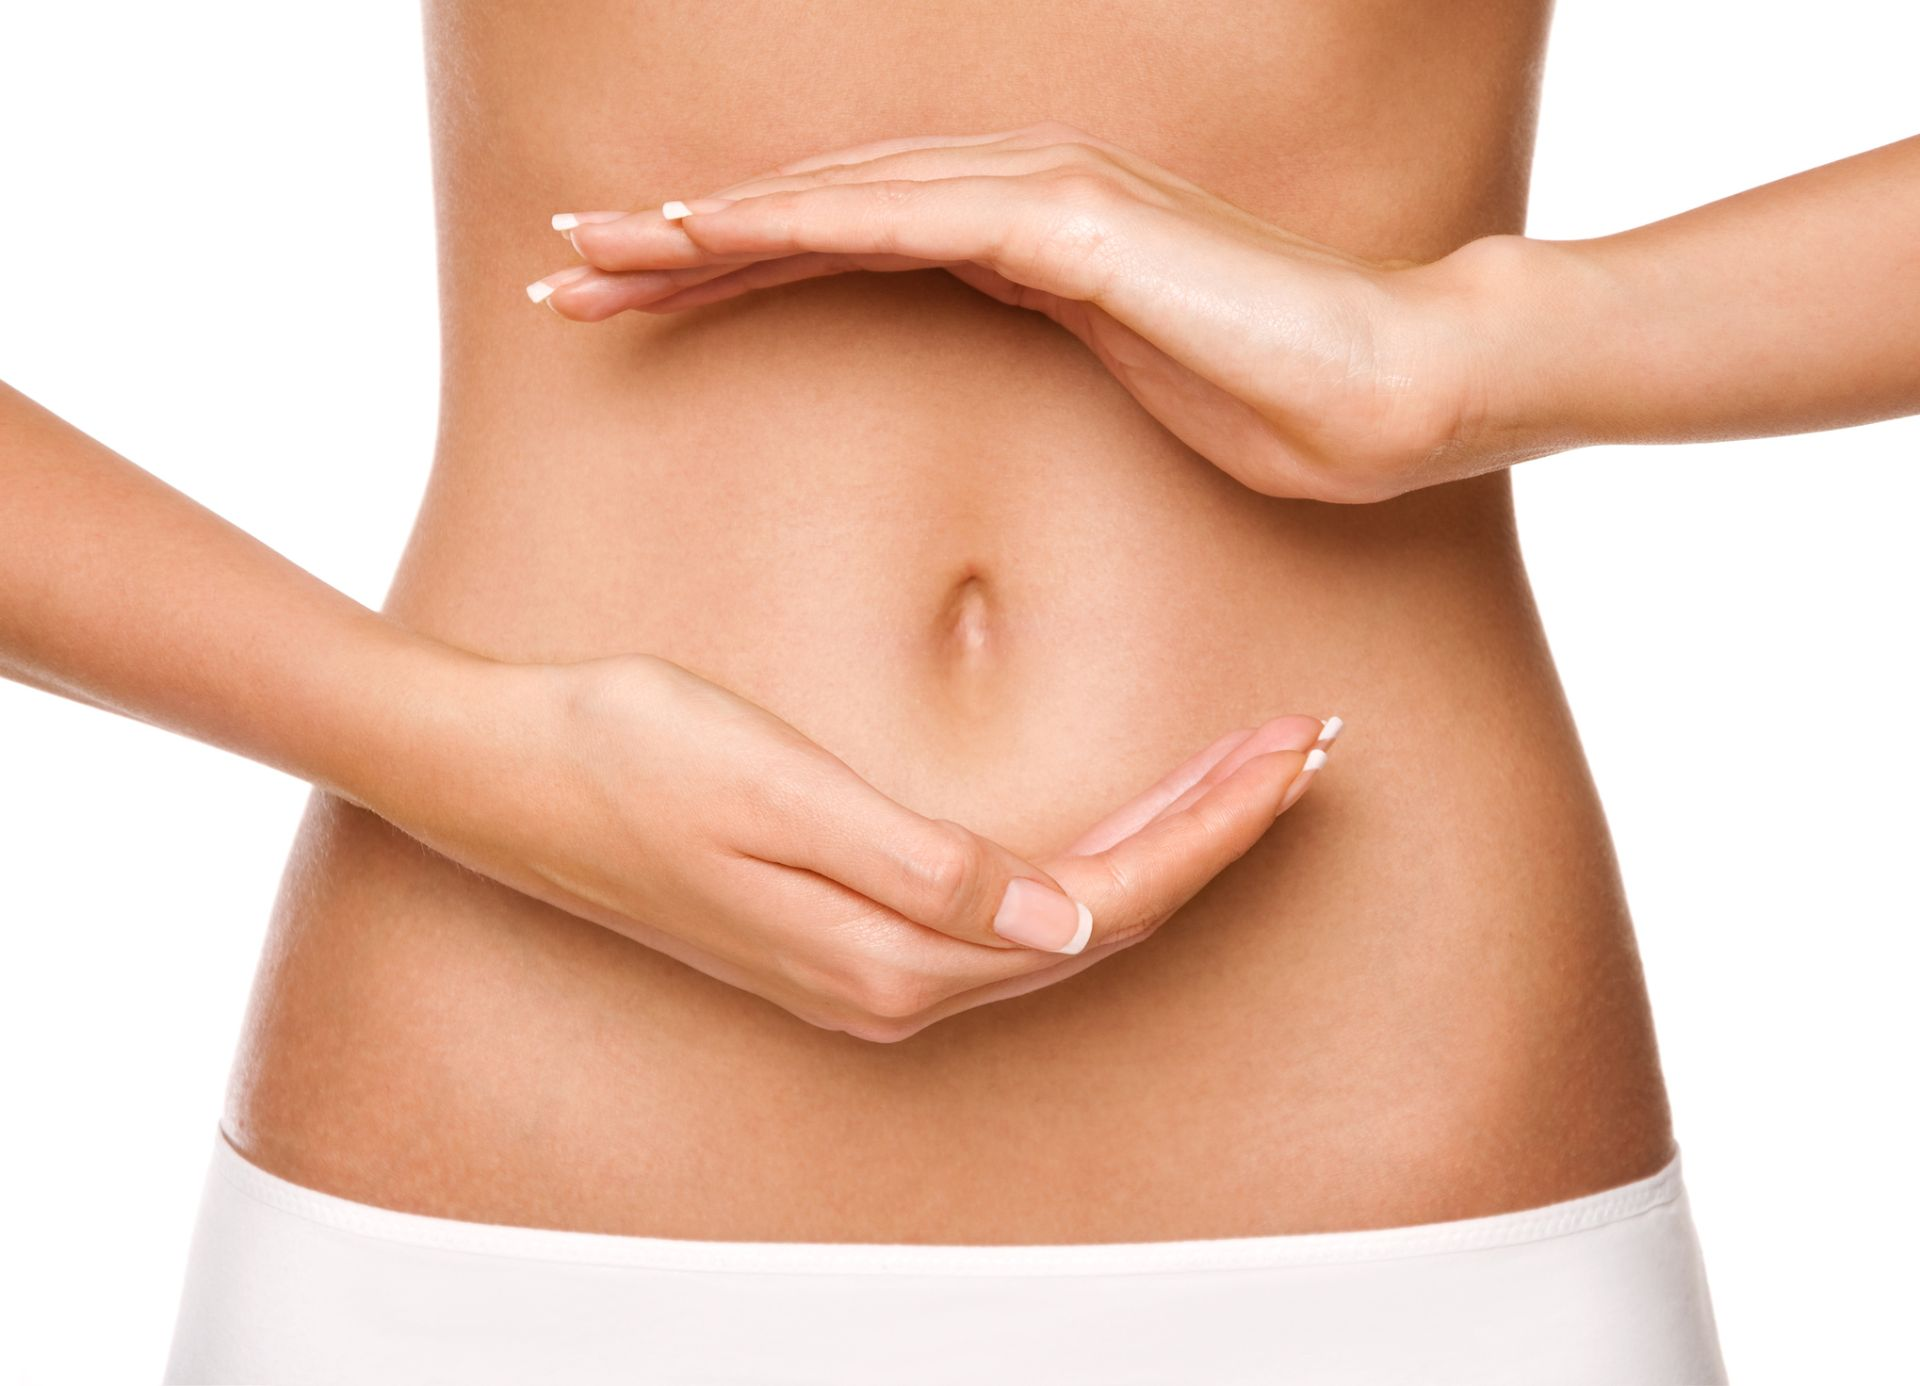 Female shaping circle with hands on her stomach. Isolated on white